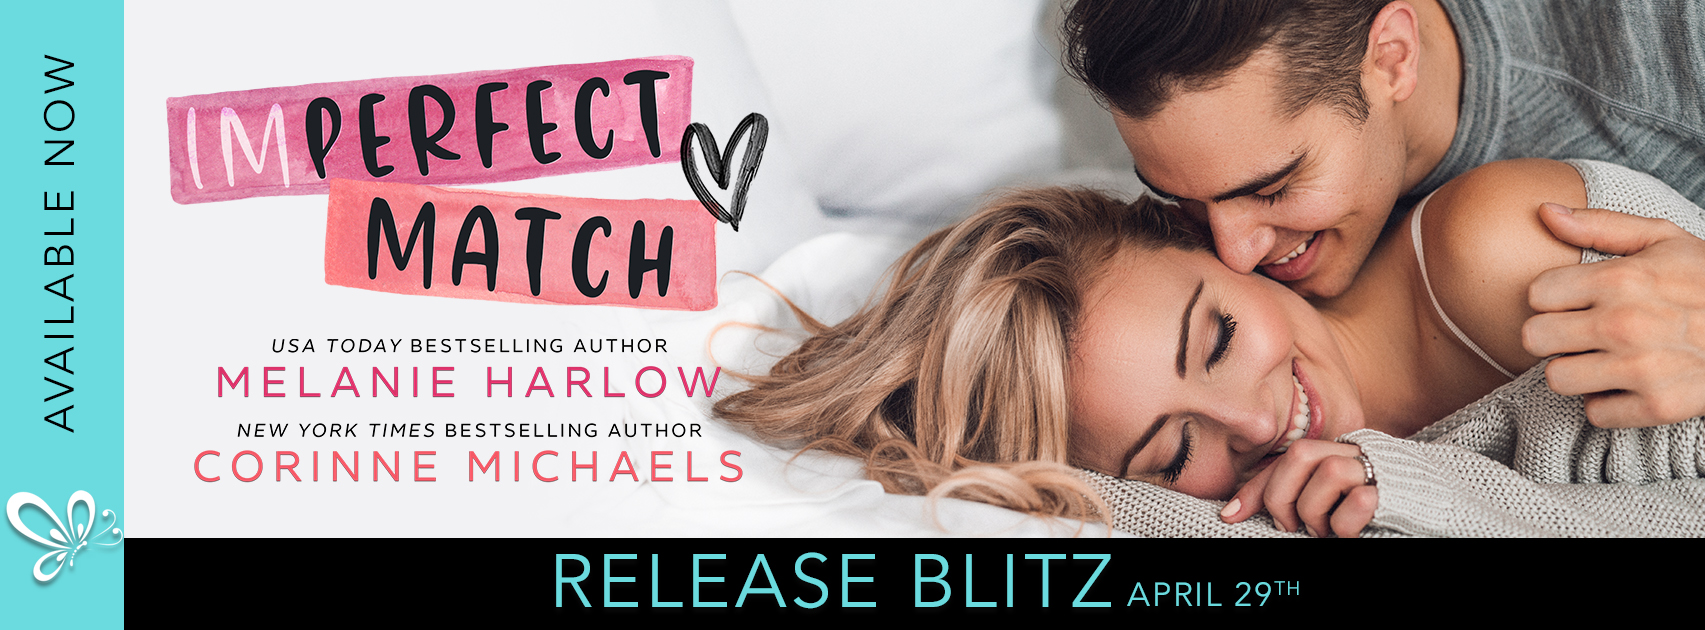 Release Blitz:  Imperfect Match by Melanie Harlow and Corinne Michaels